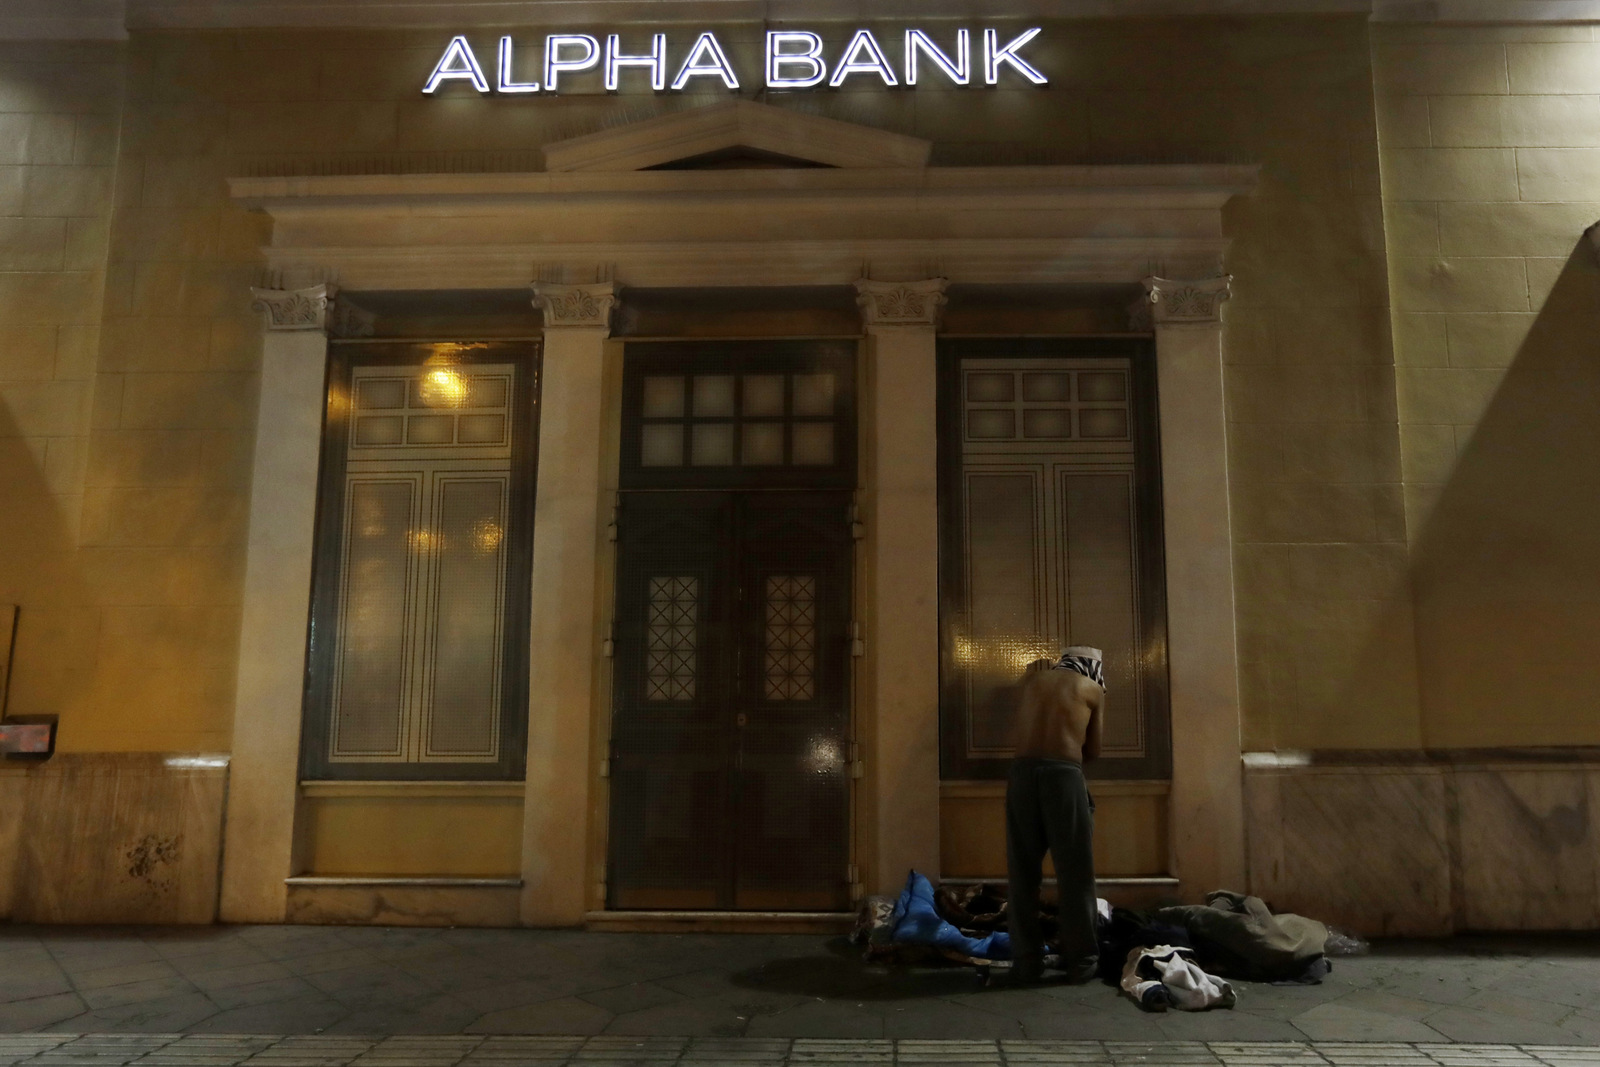 A homeless person changes clothes outside a bank in central Athens. Nearly one-in-four Greeks are unemployed and receive no benefits. Poverty rates have surged here since the start of the crisis in late 2009, with nearly 36 percent of the country living in financial distress. (AP/Thanassis Stavrakis)